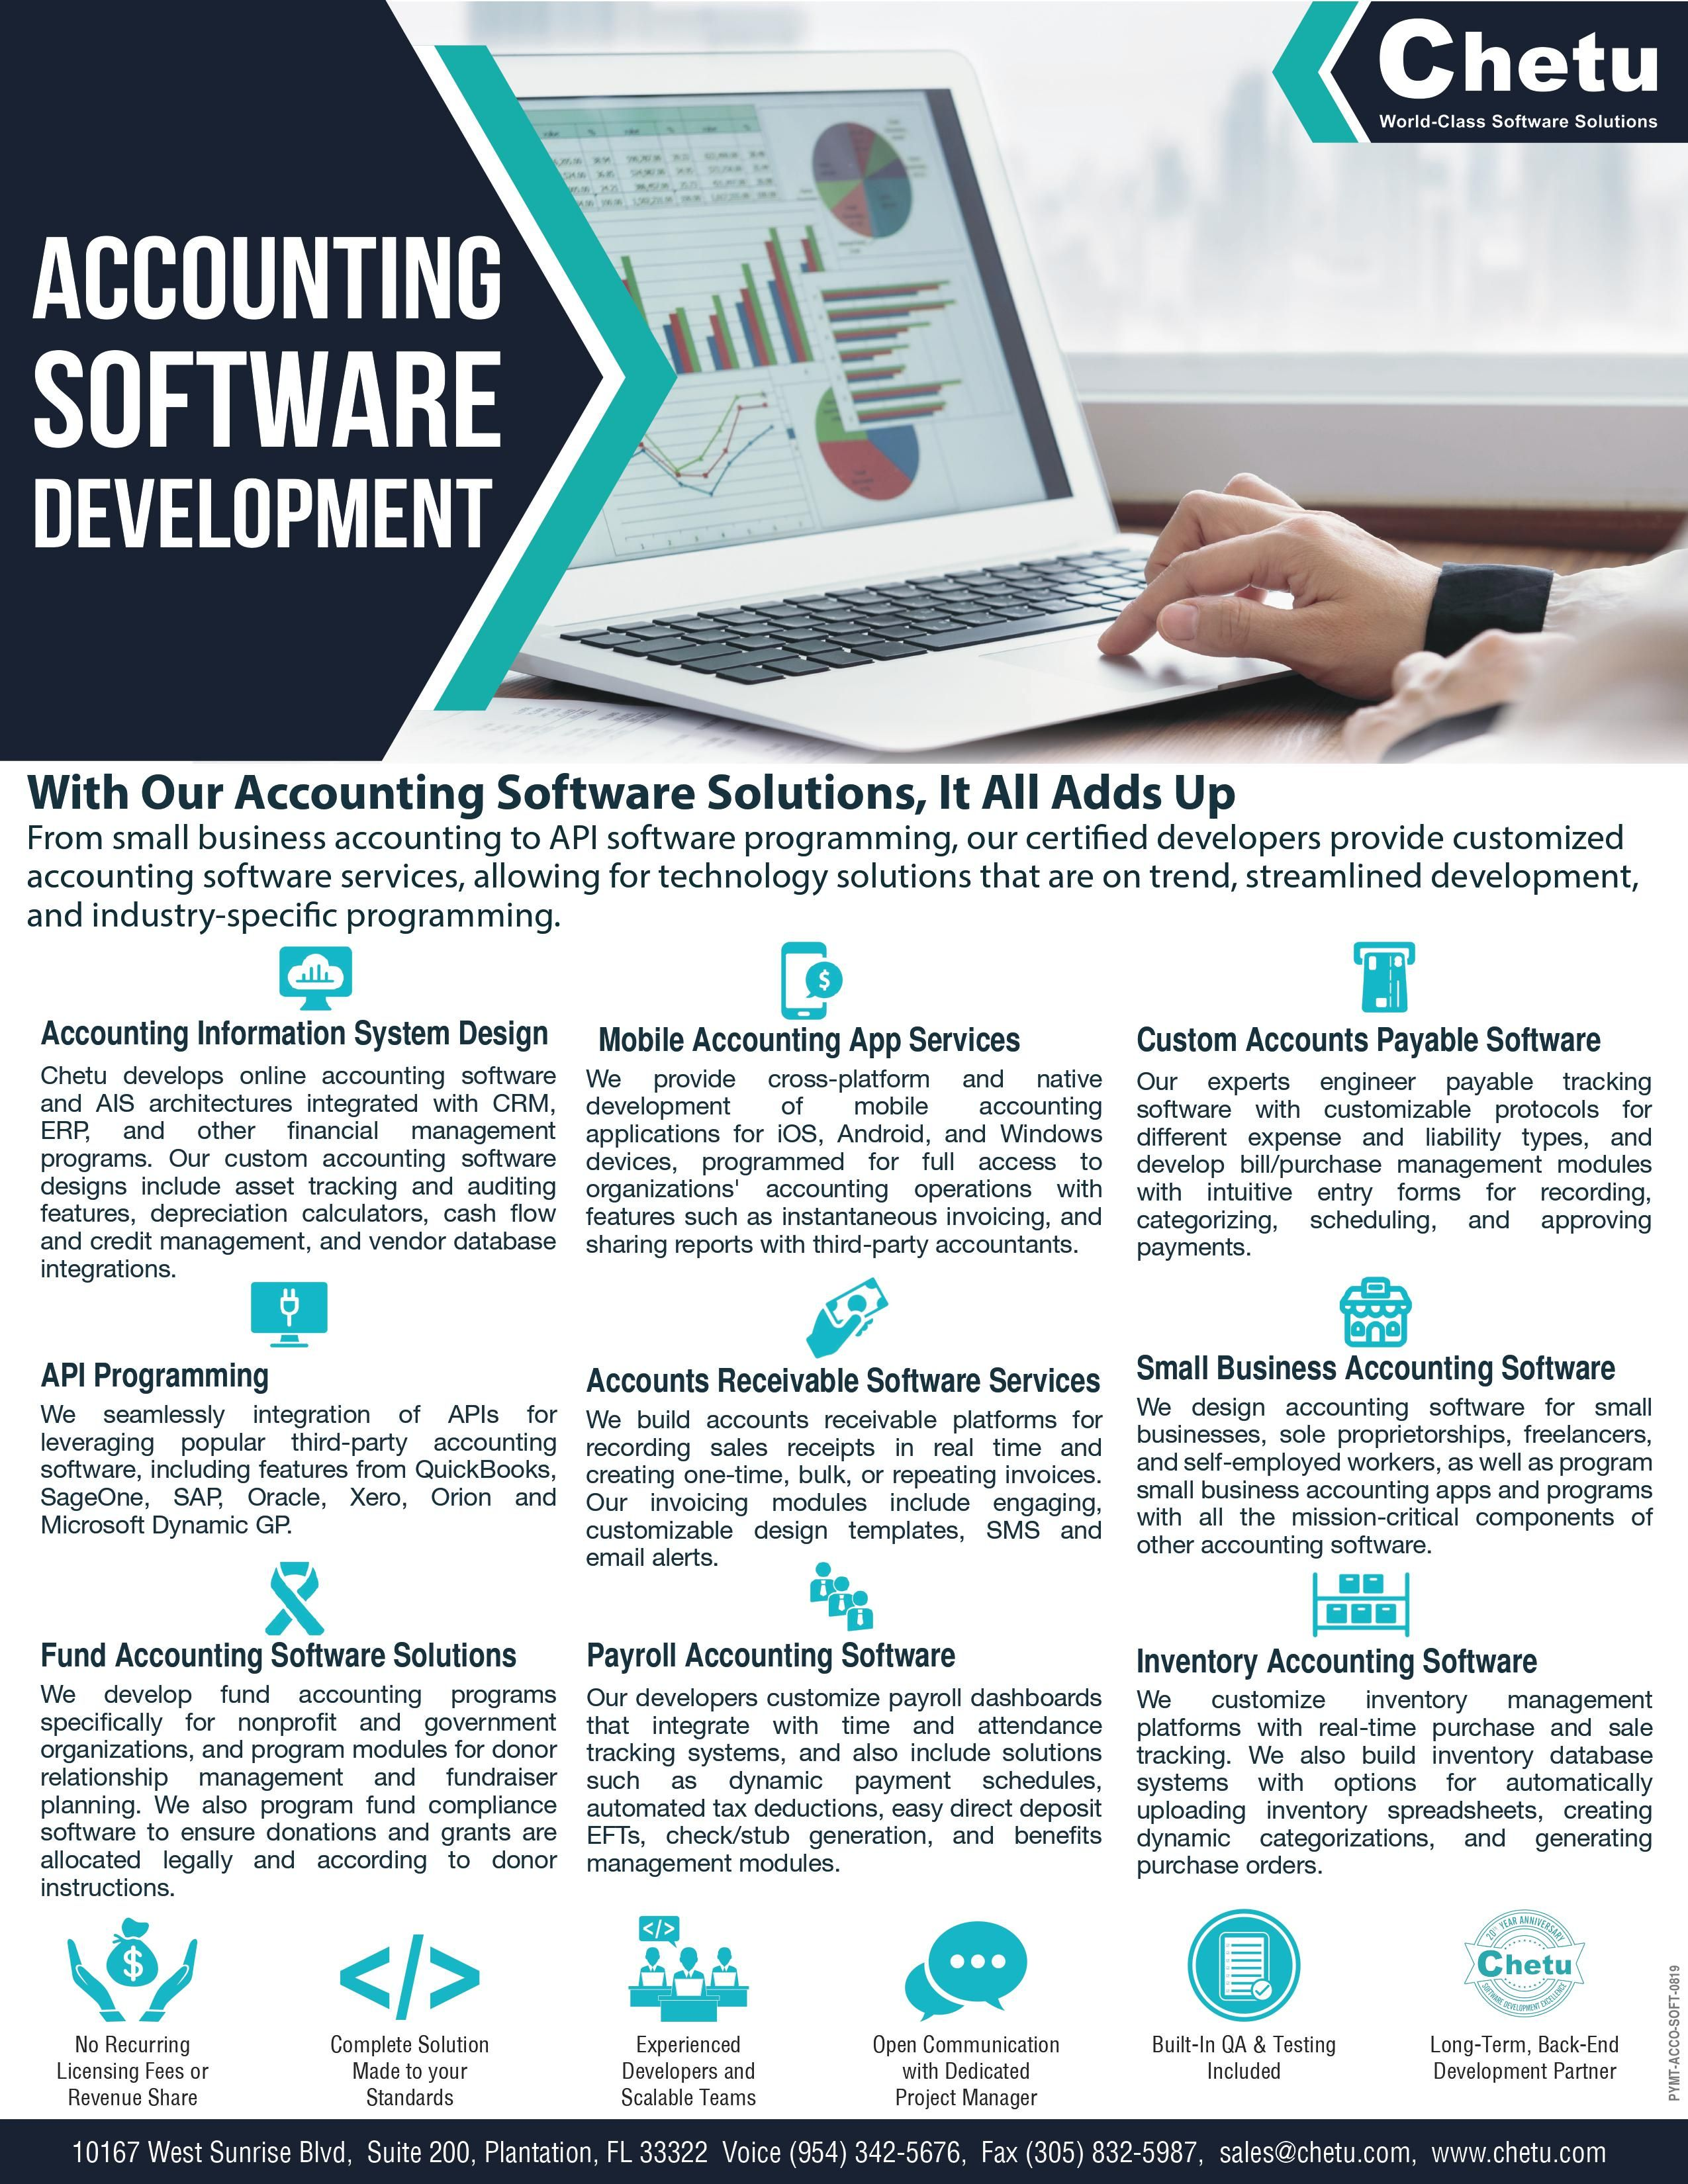 Accounting Software Development Software Development Accounting Software Accounting